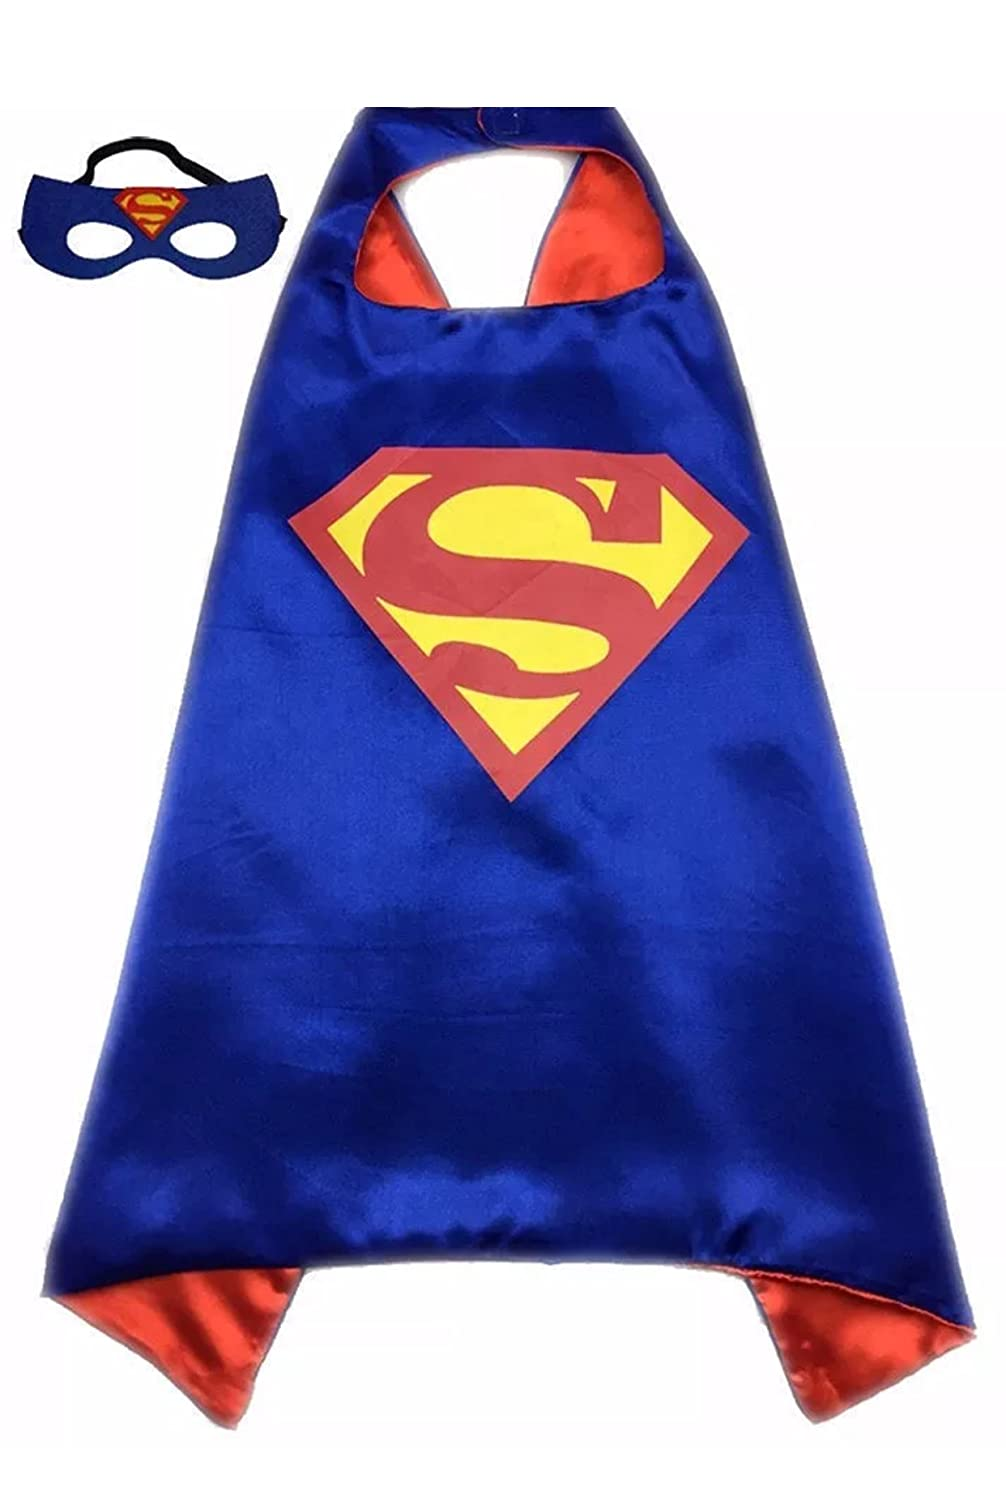 Kids Superhero Superman Costume and Dress up For Kids Cape and Felt Mask